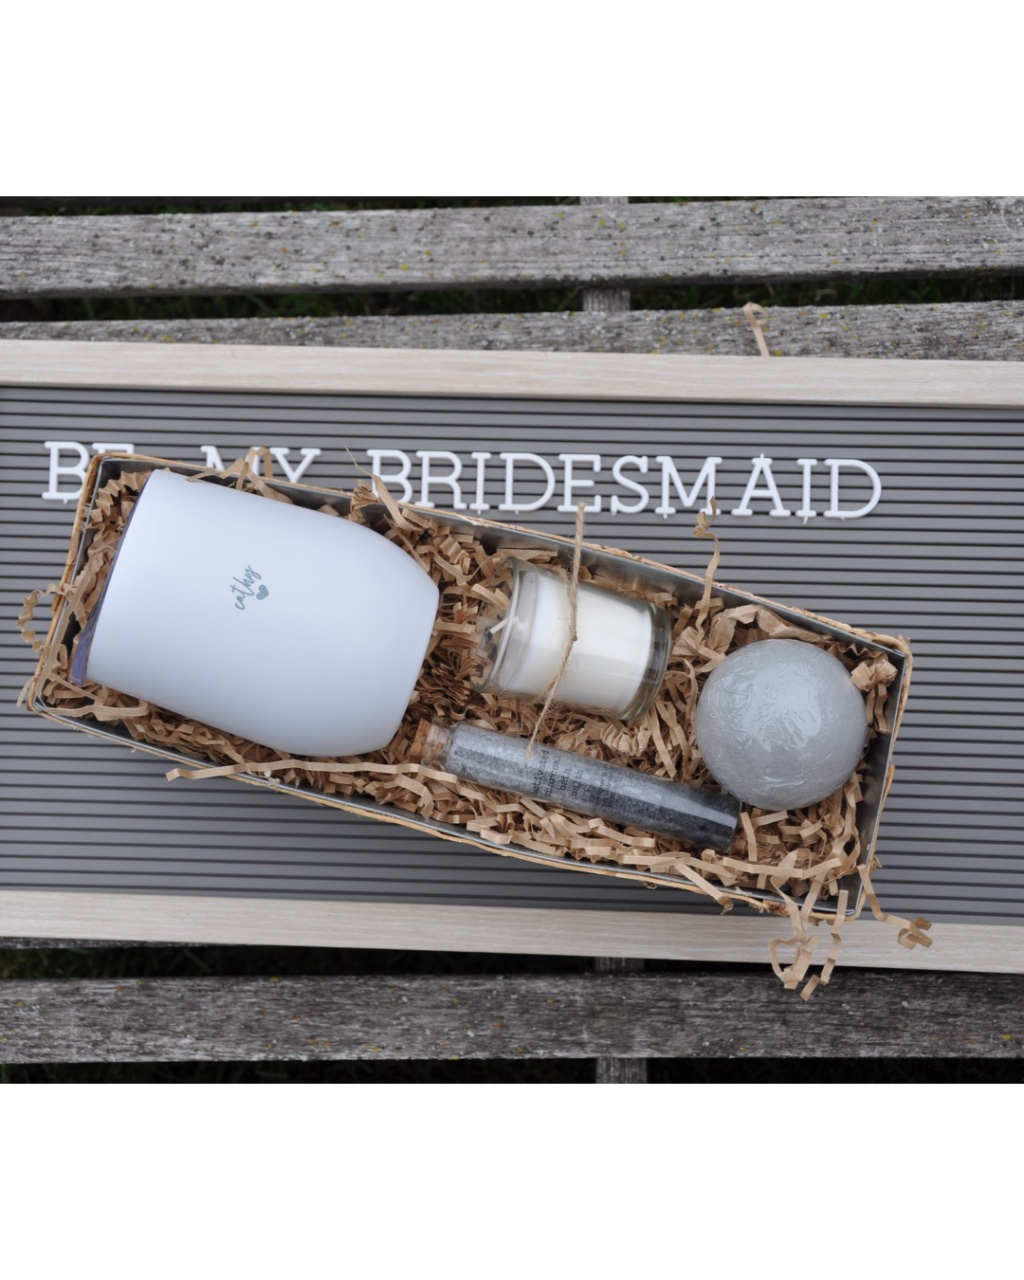 Planning your winery wedding? Create your bridesmaid gifts to match your theme! These personalized wine tumblers (and spa goodies